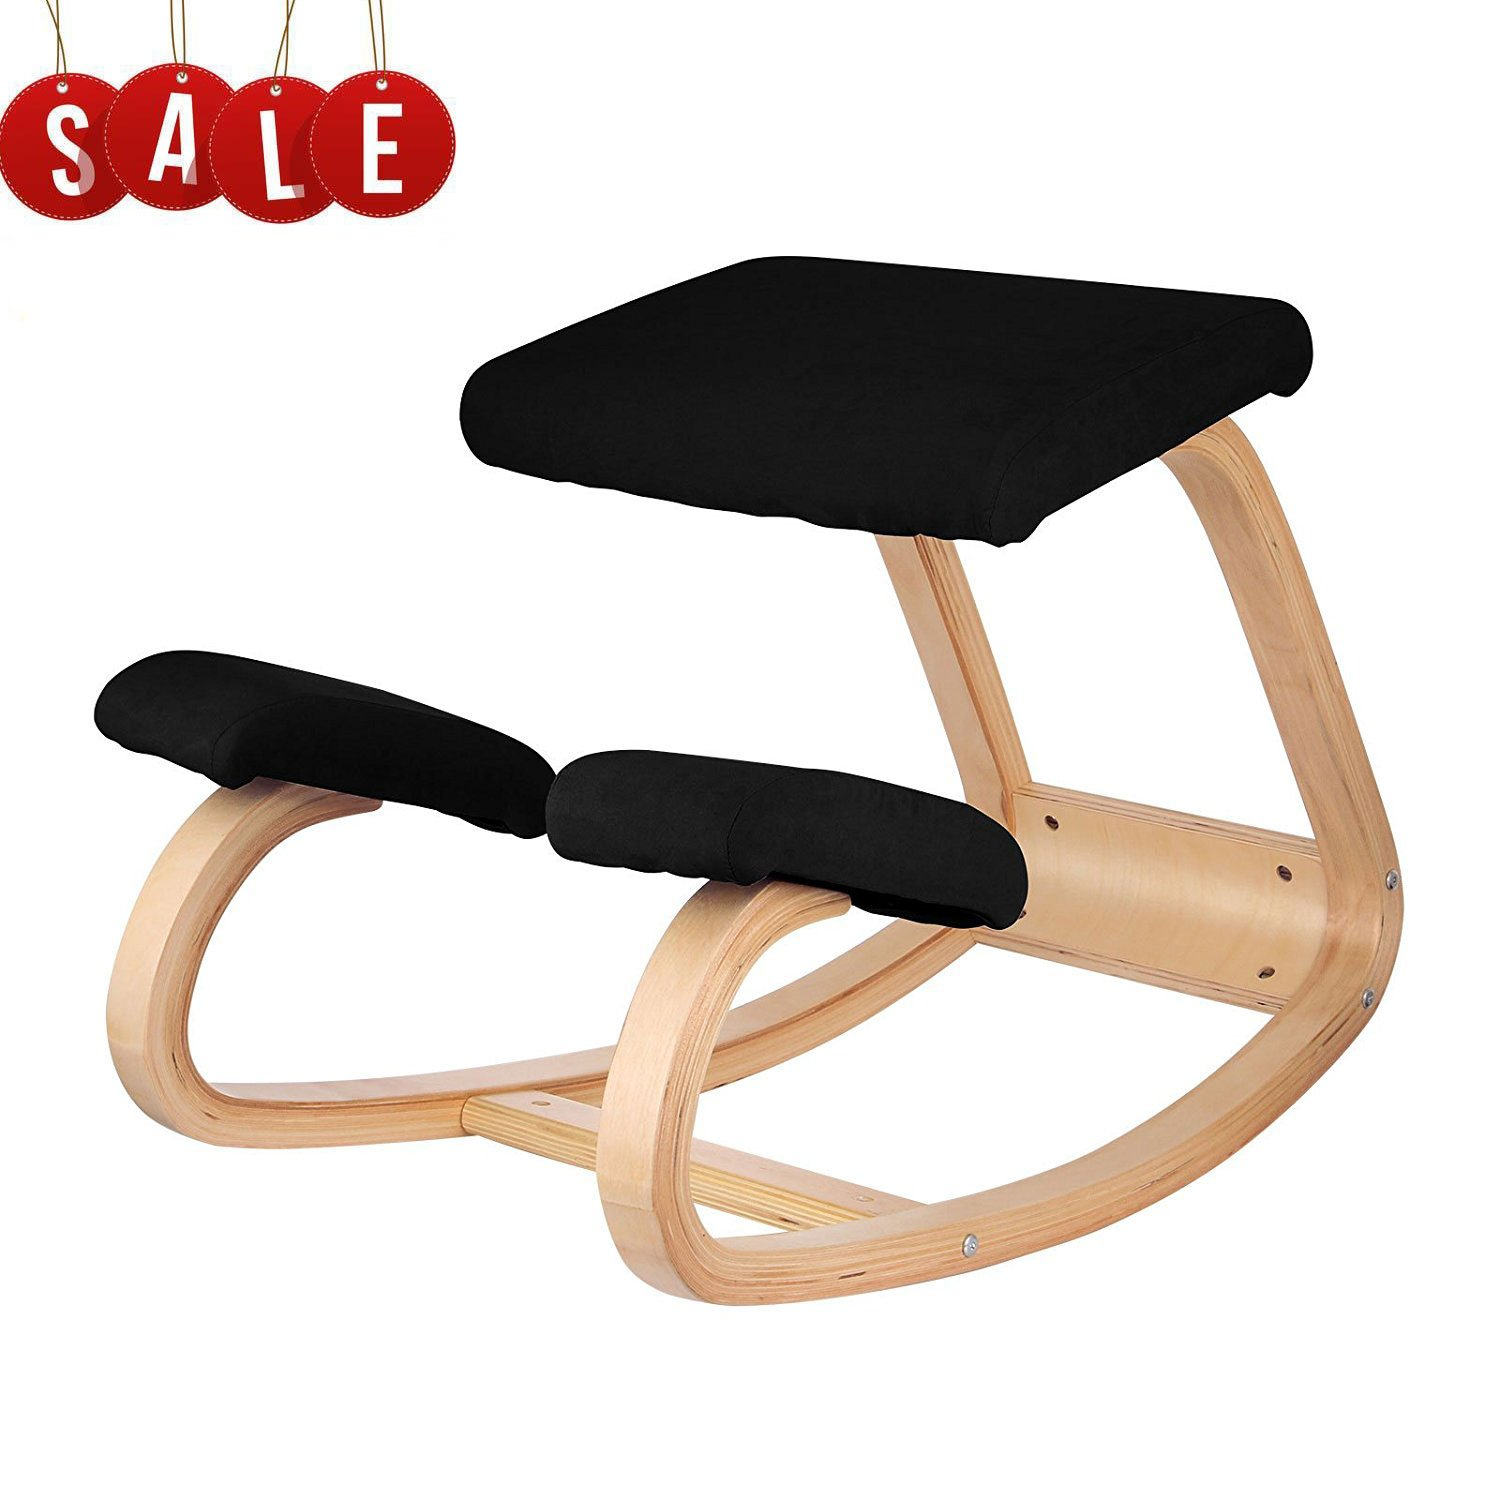 VEVOR Ergonomic Kneeling Chair Beech wood Ergonomic Kneeling Office Chair Perfect for Body Shaping and Relieving Stress